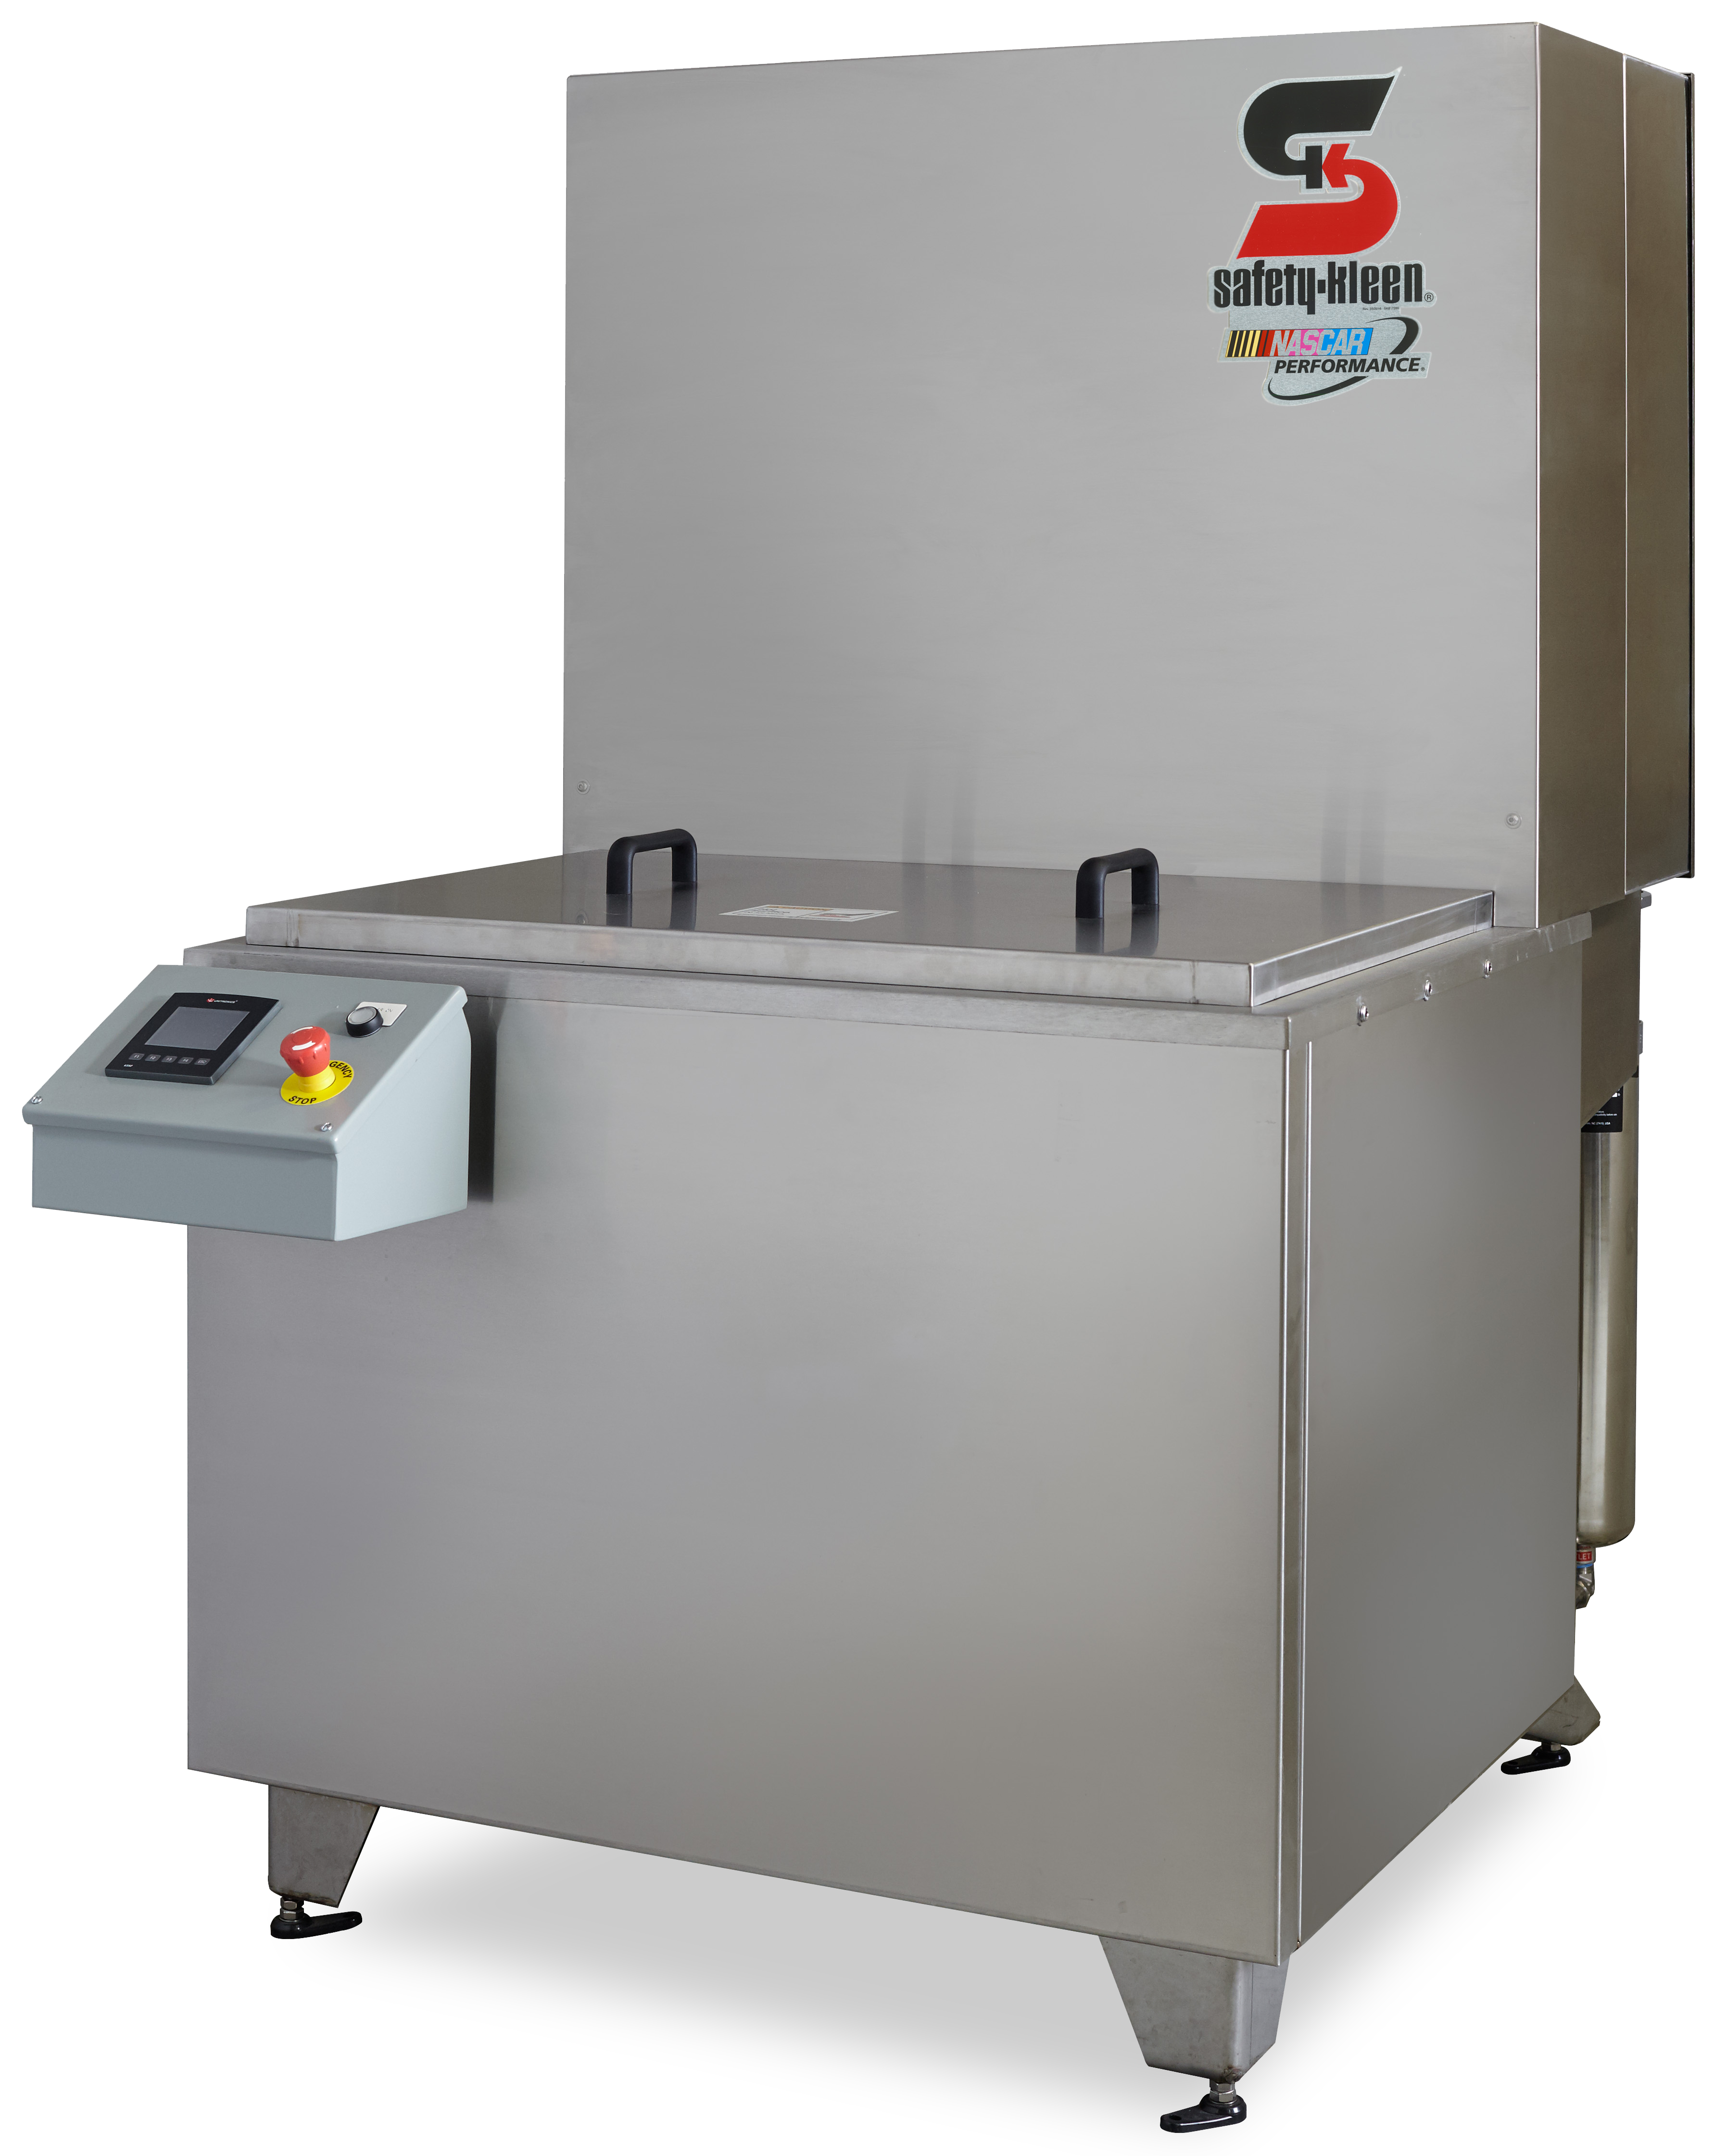 Aqueous Parts Washers Offers Next Generation Cleaning Technology